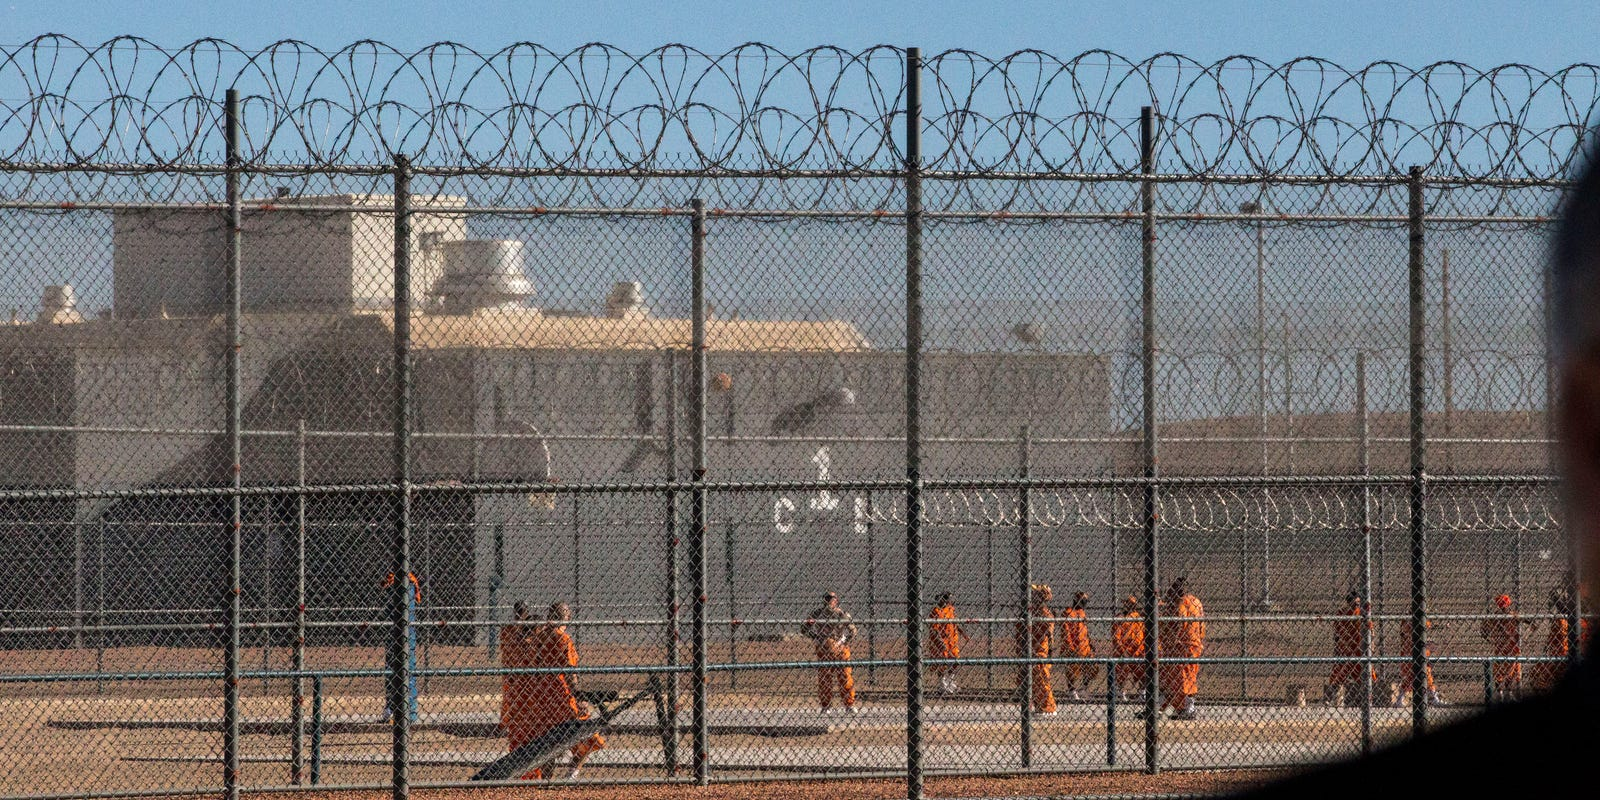 Arizona releases no details about inmate transfer from Lewis